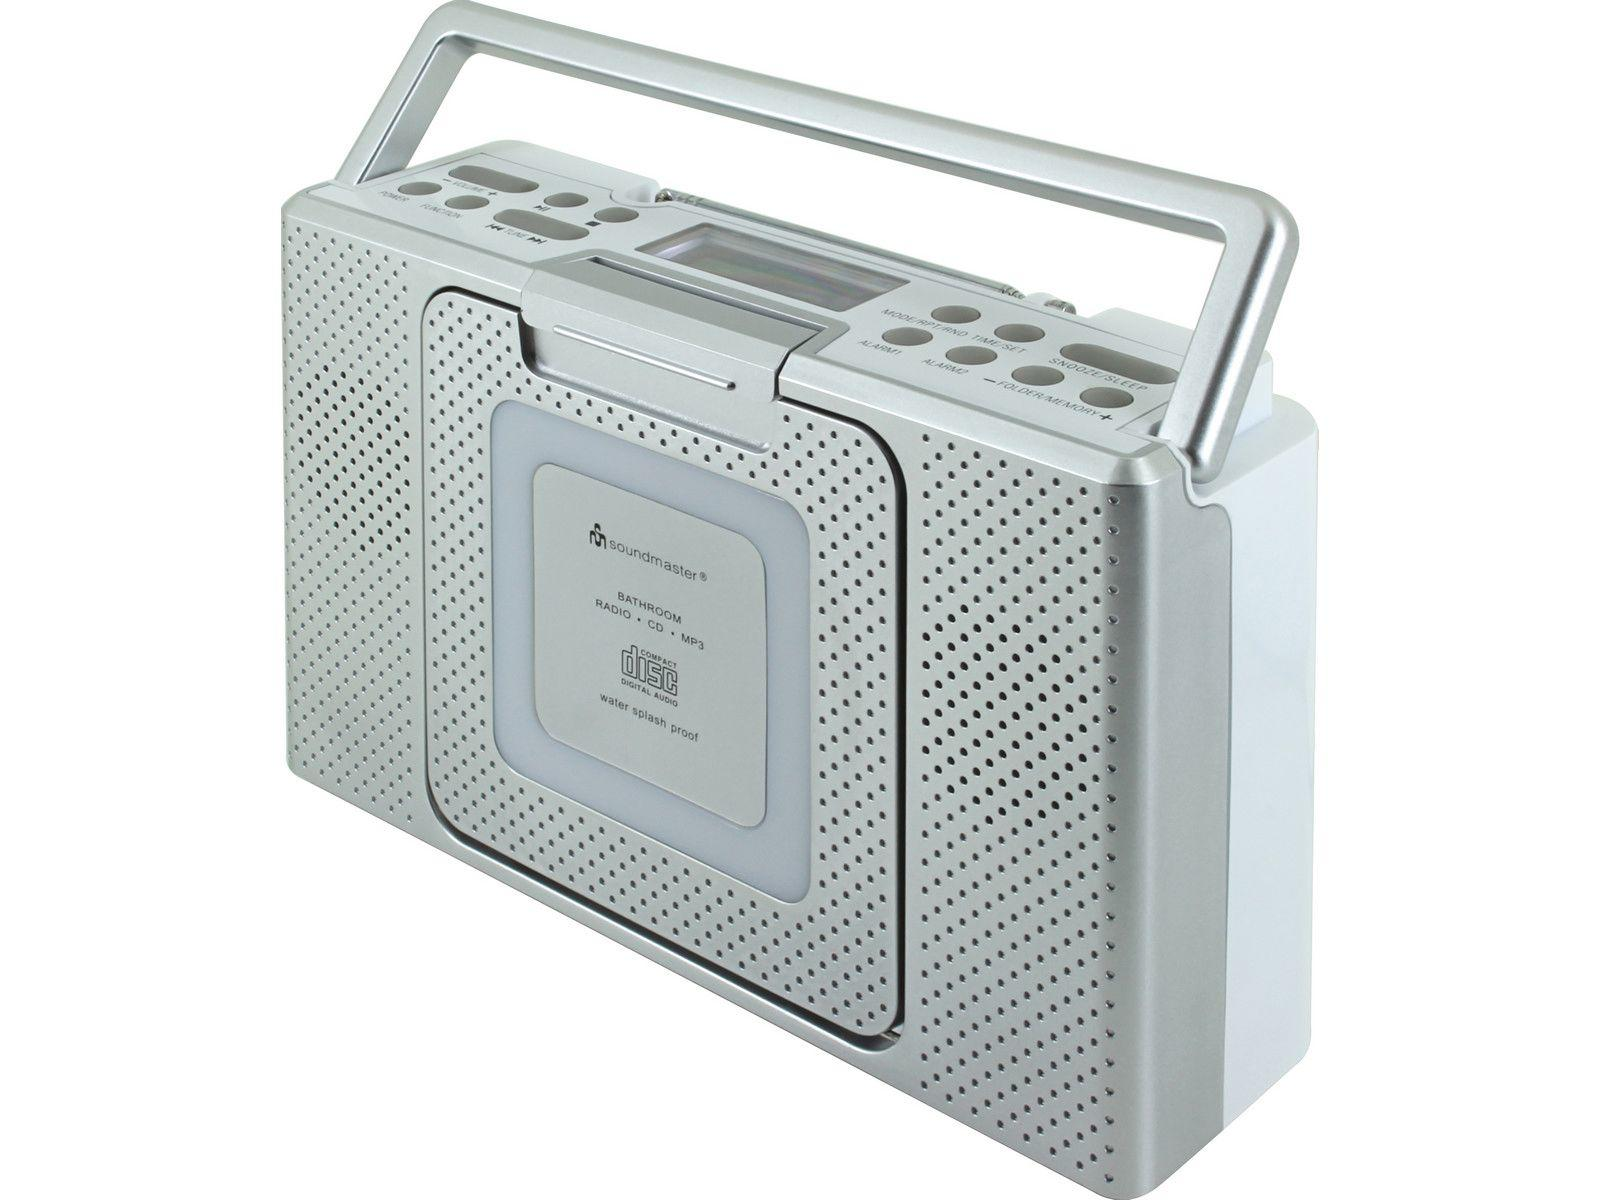 Full view of soundmaster BCD480 Splashproof Portable FM Radio & CD Player in silver